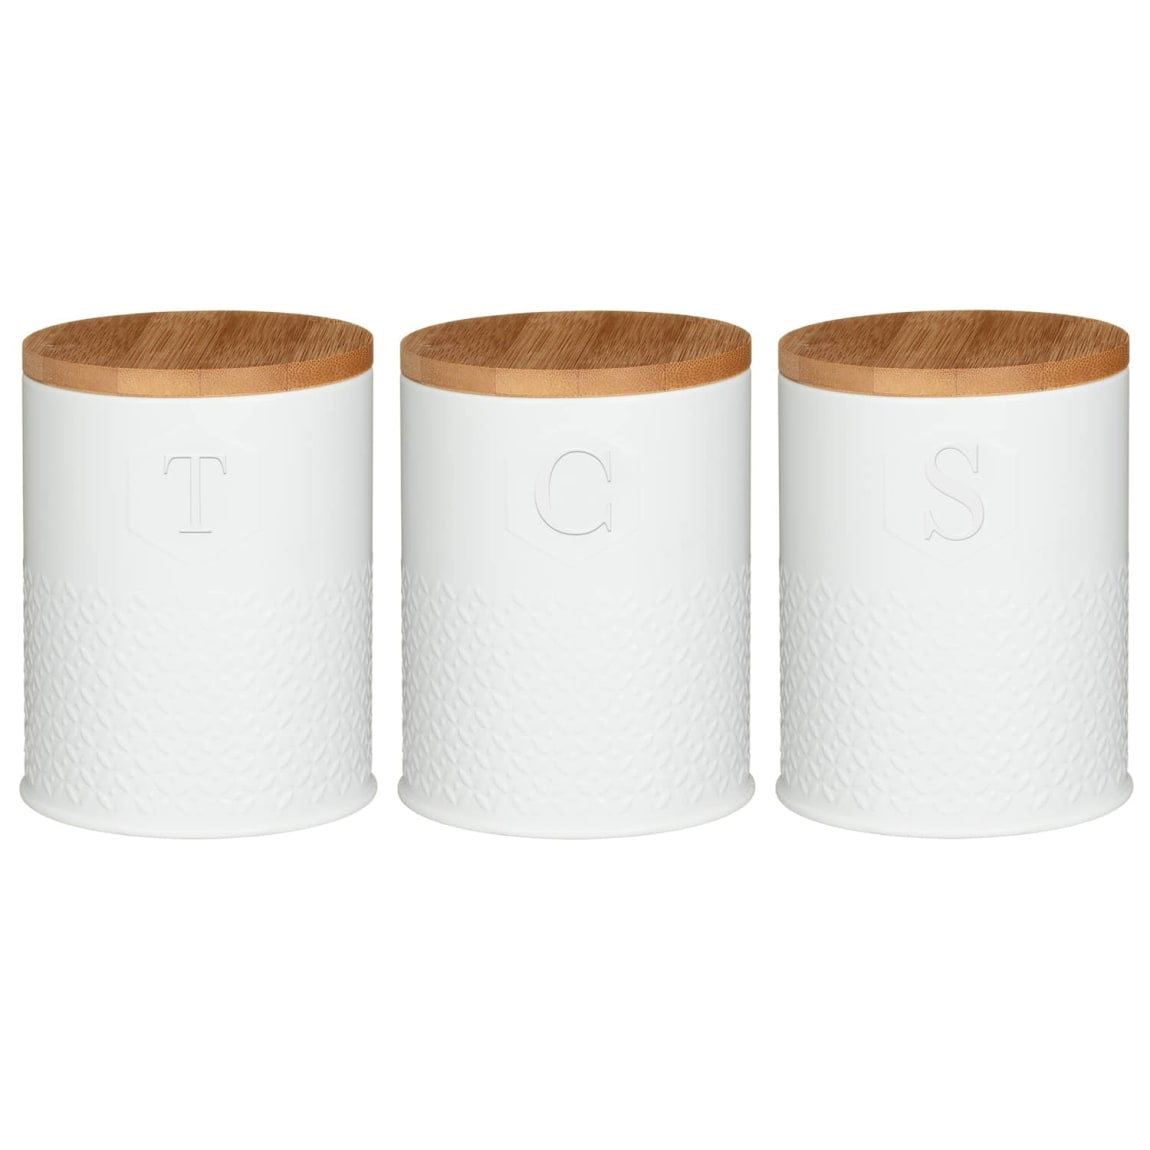 Embossed Knit Effect Kitchen Canisters 3pc